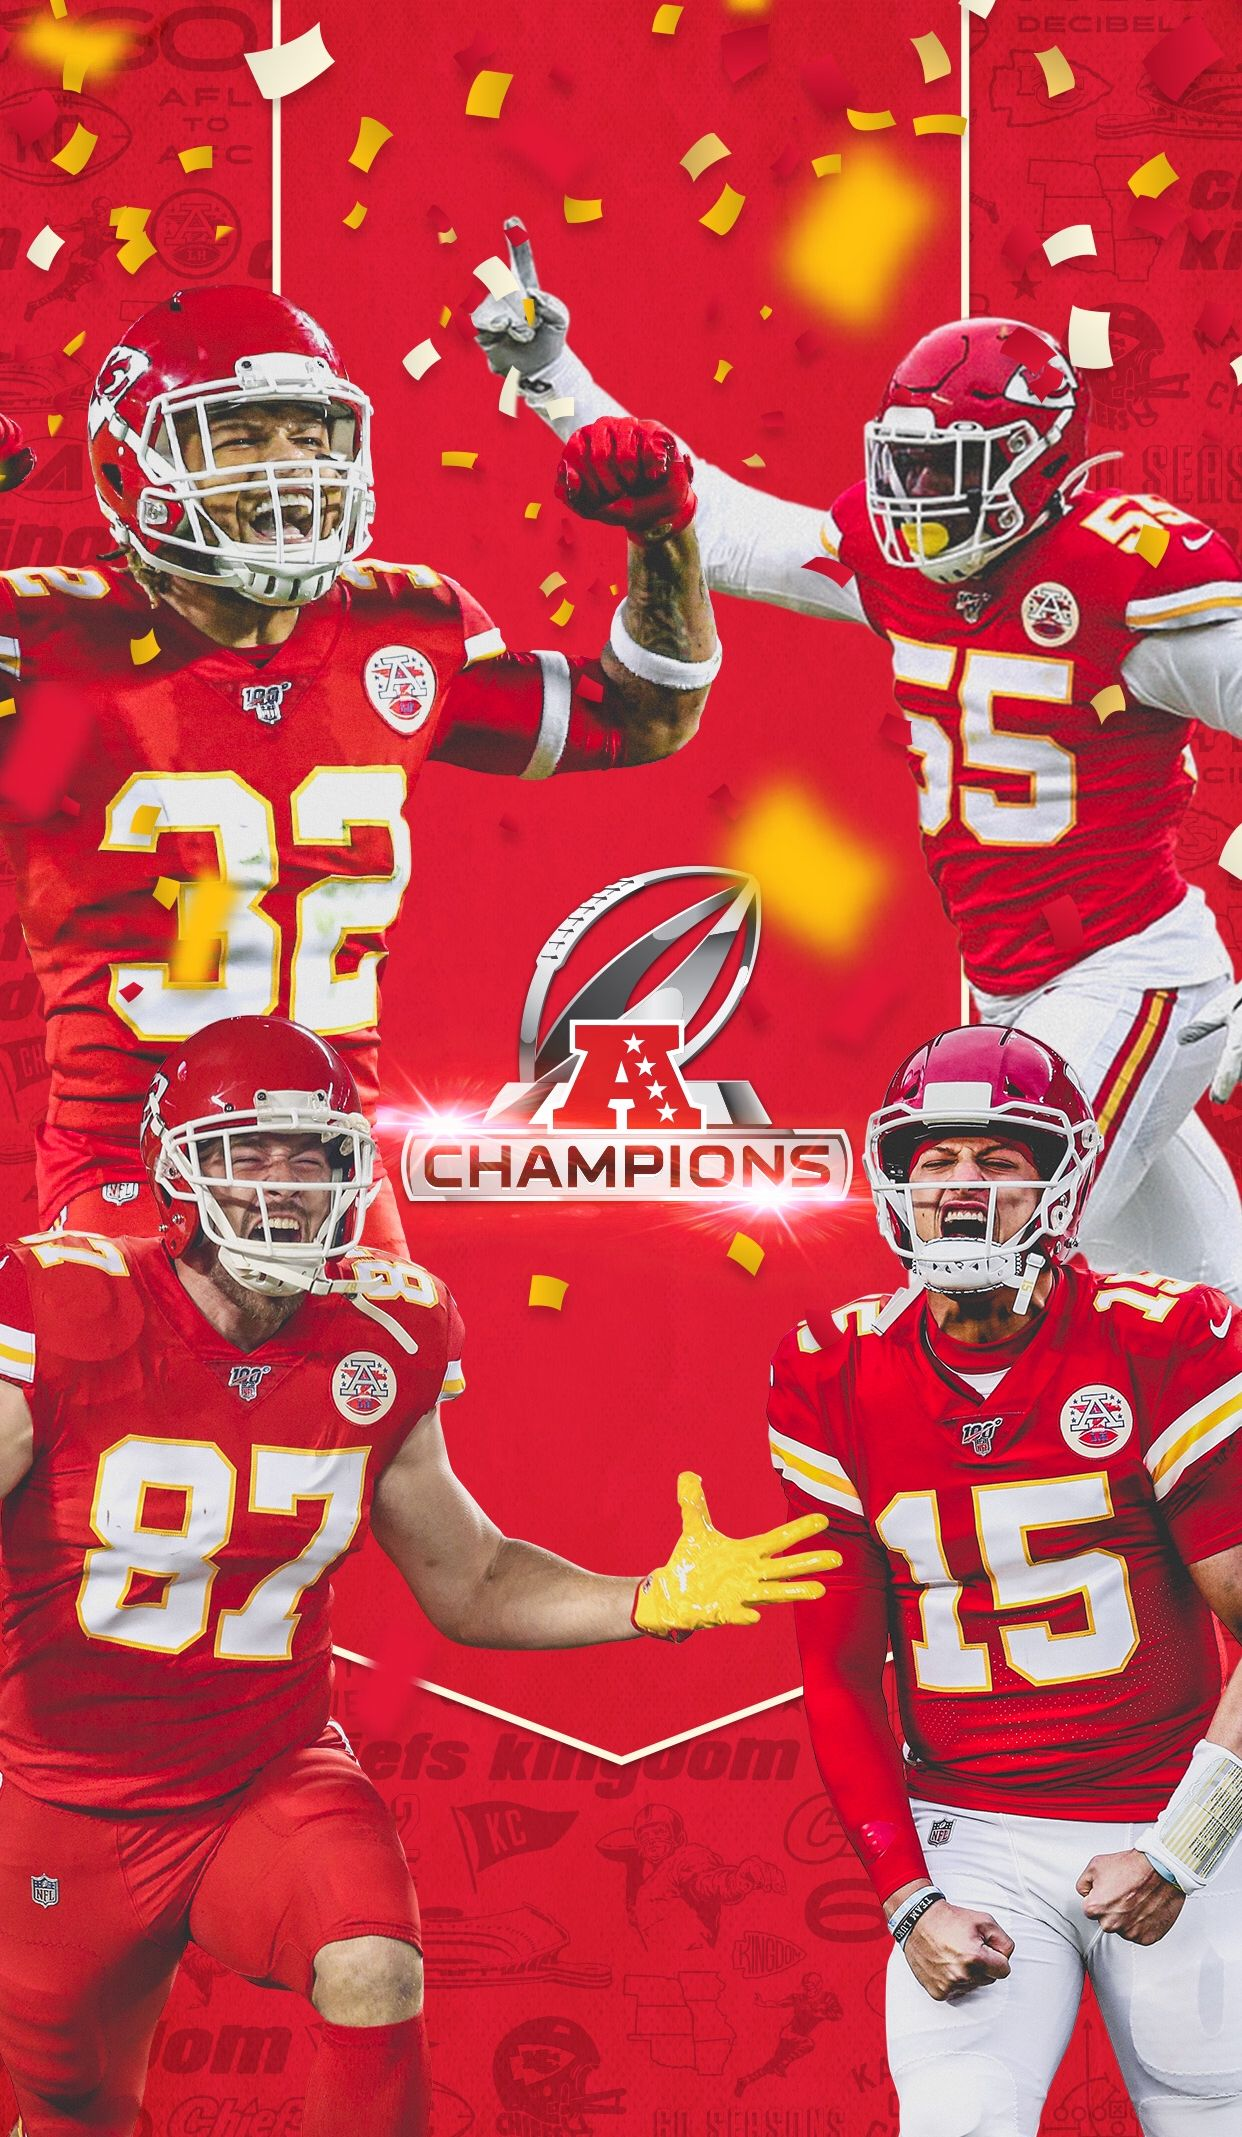 Pin By Mike Ackerly On Kansas City In 2020 Kansas City Chiefs Football Kansas Chiefs Nfl Kansas City Chiefs